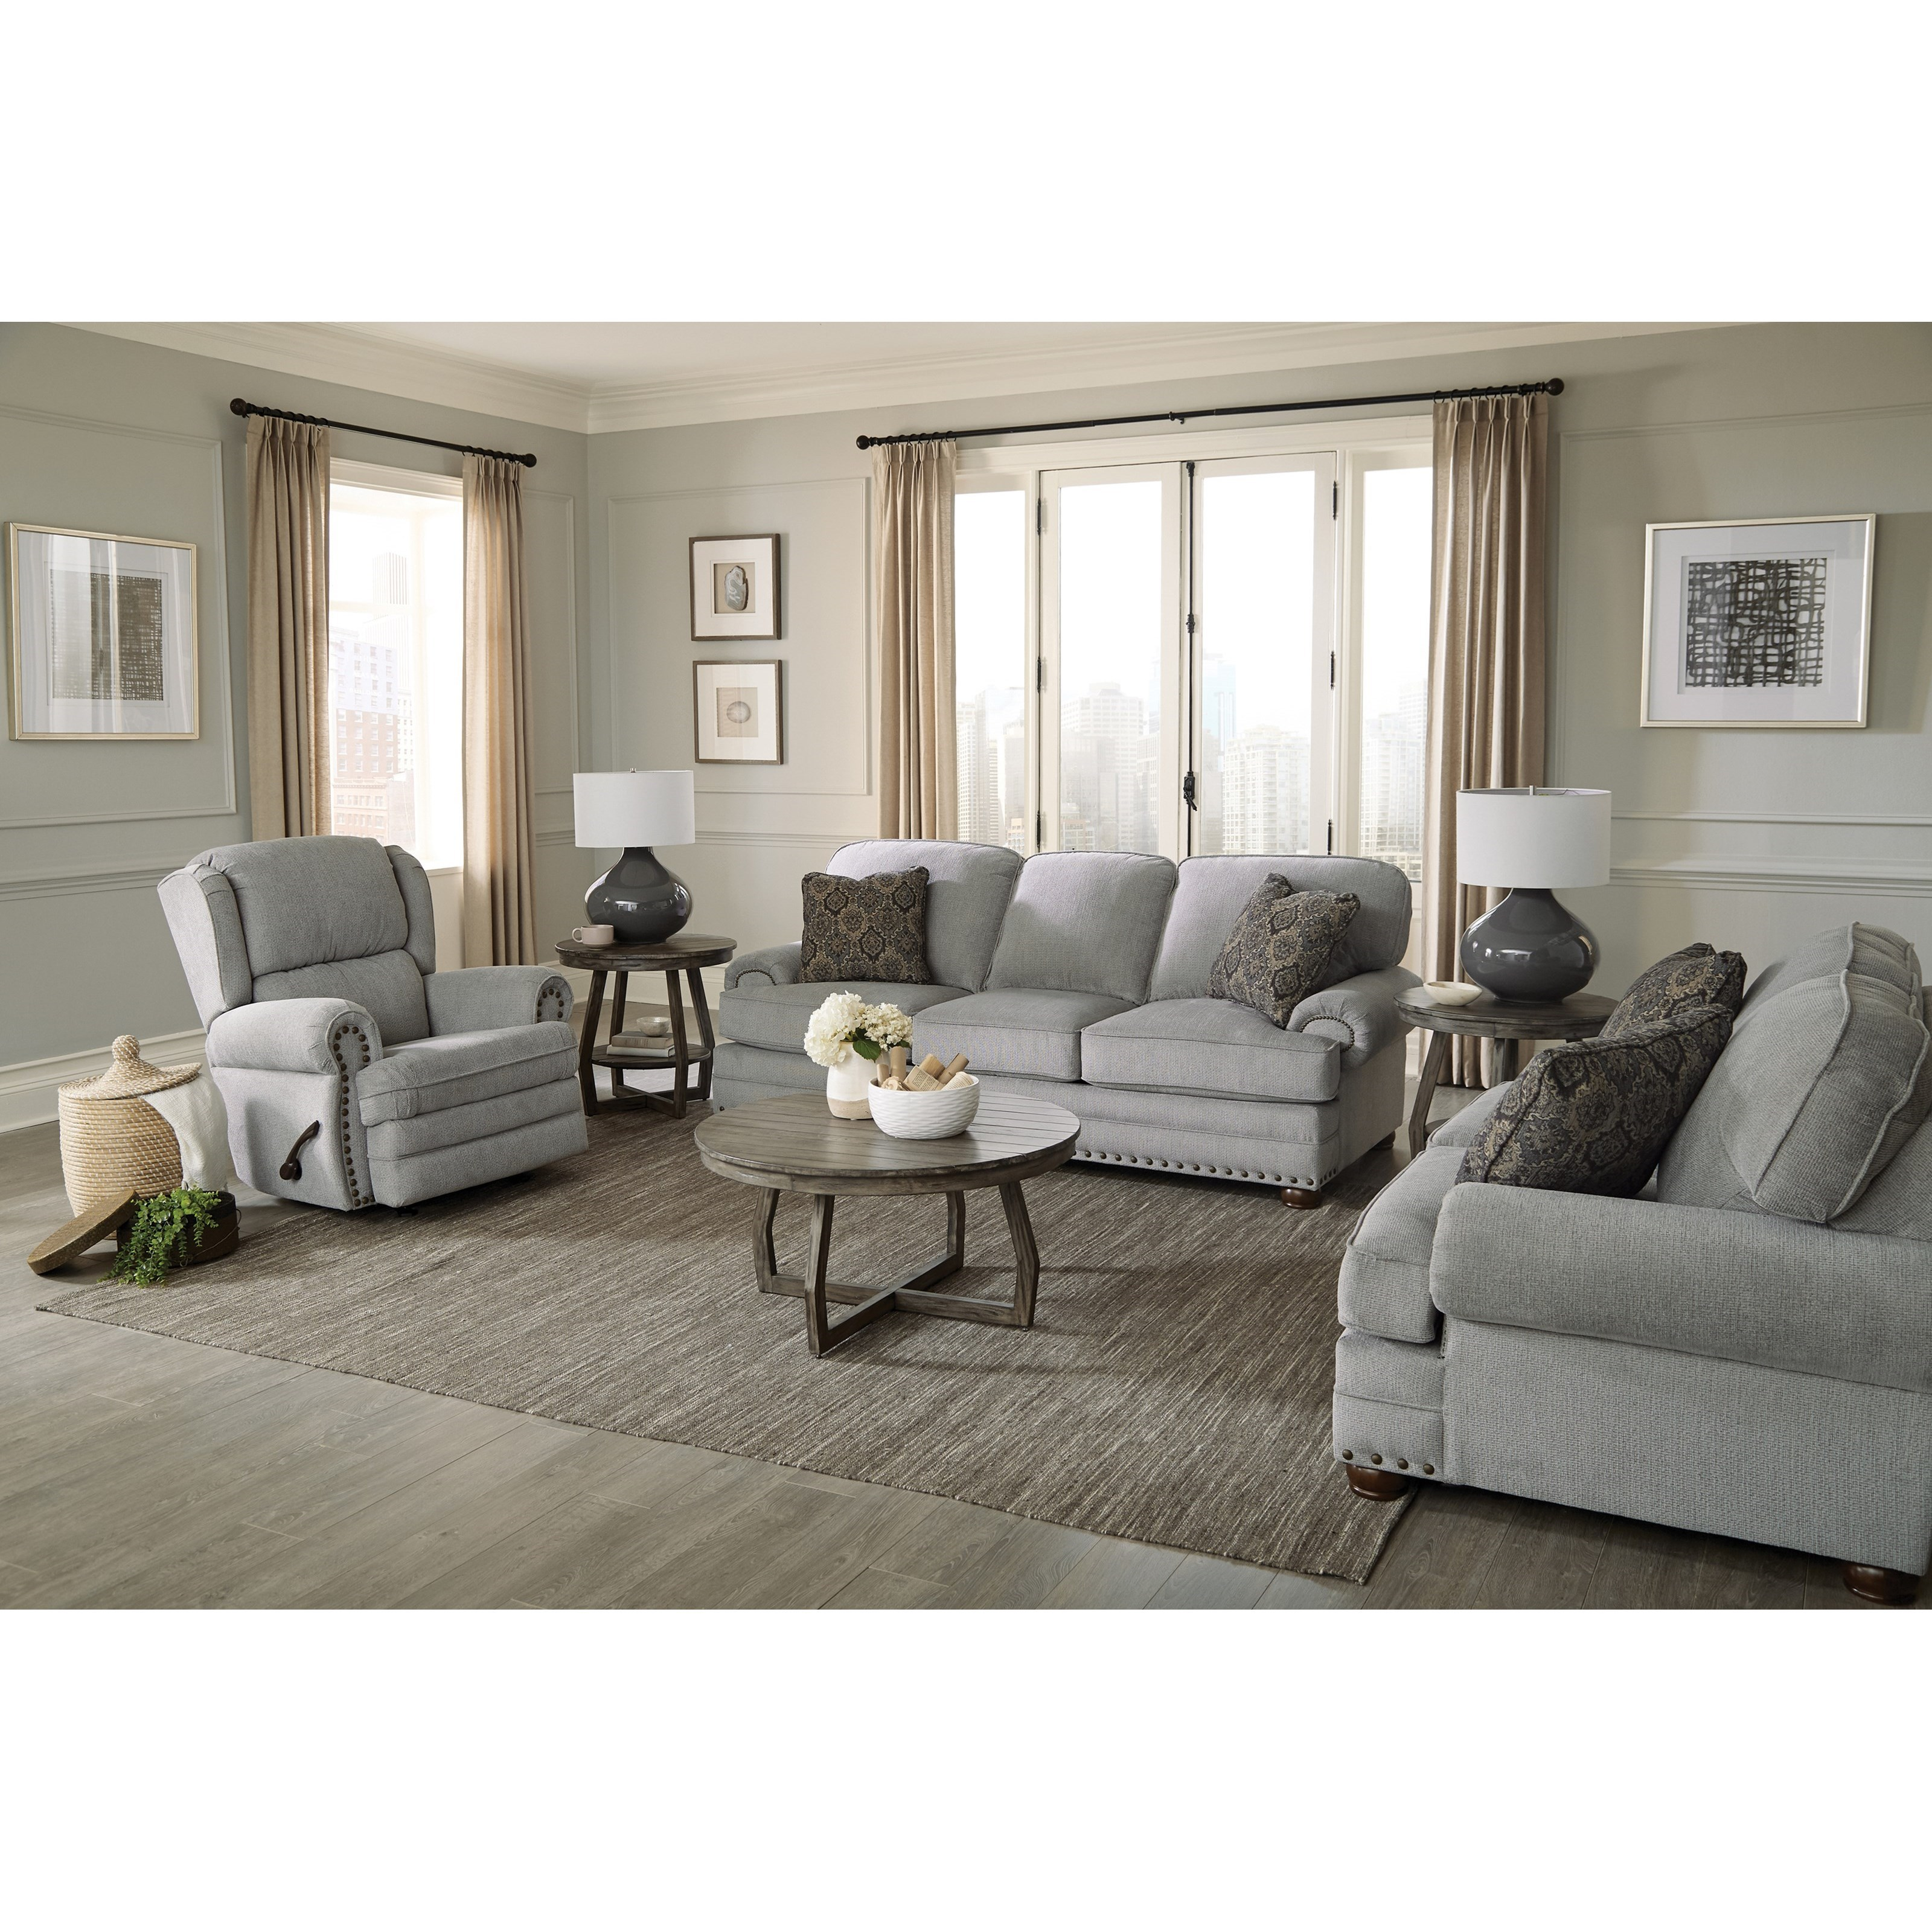 Singletary Living Room Group by Jackson Furniture at Virginia Furniture Market